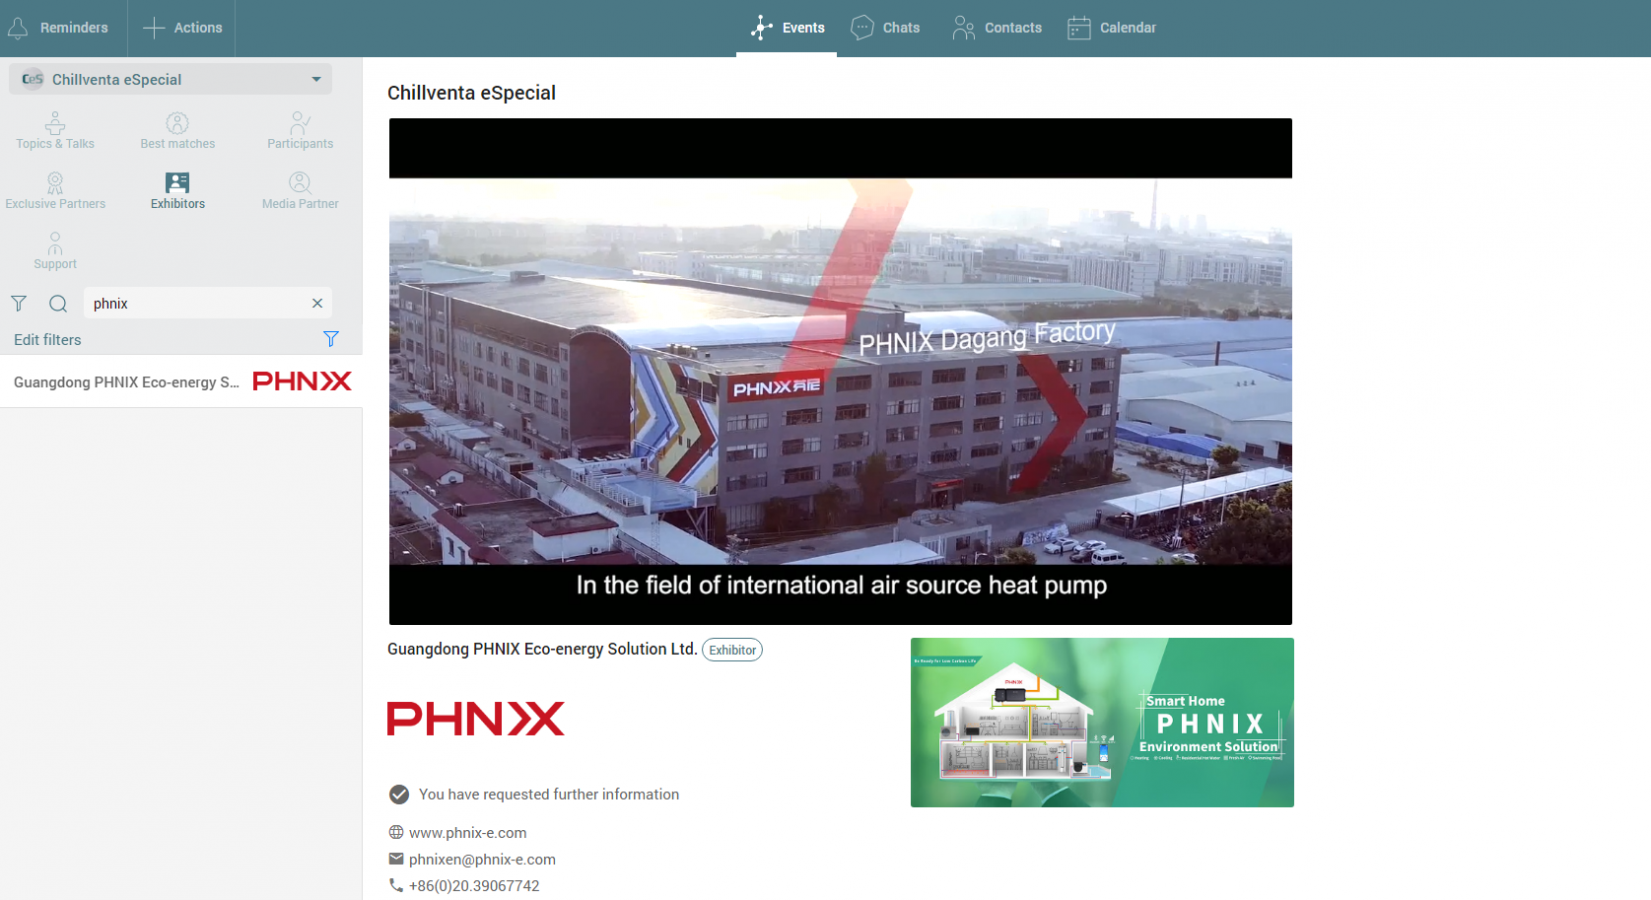 PHNIX Will Attend Chillventa eSpecial Online Exhibition